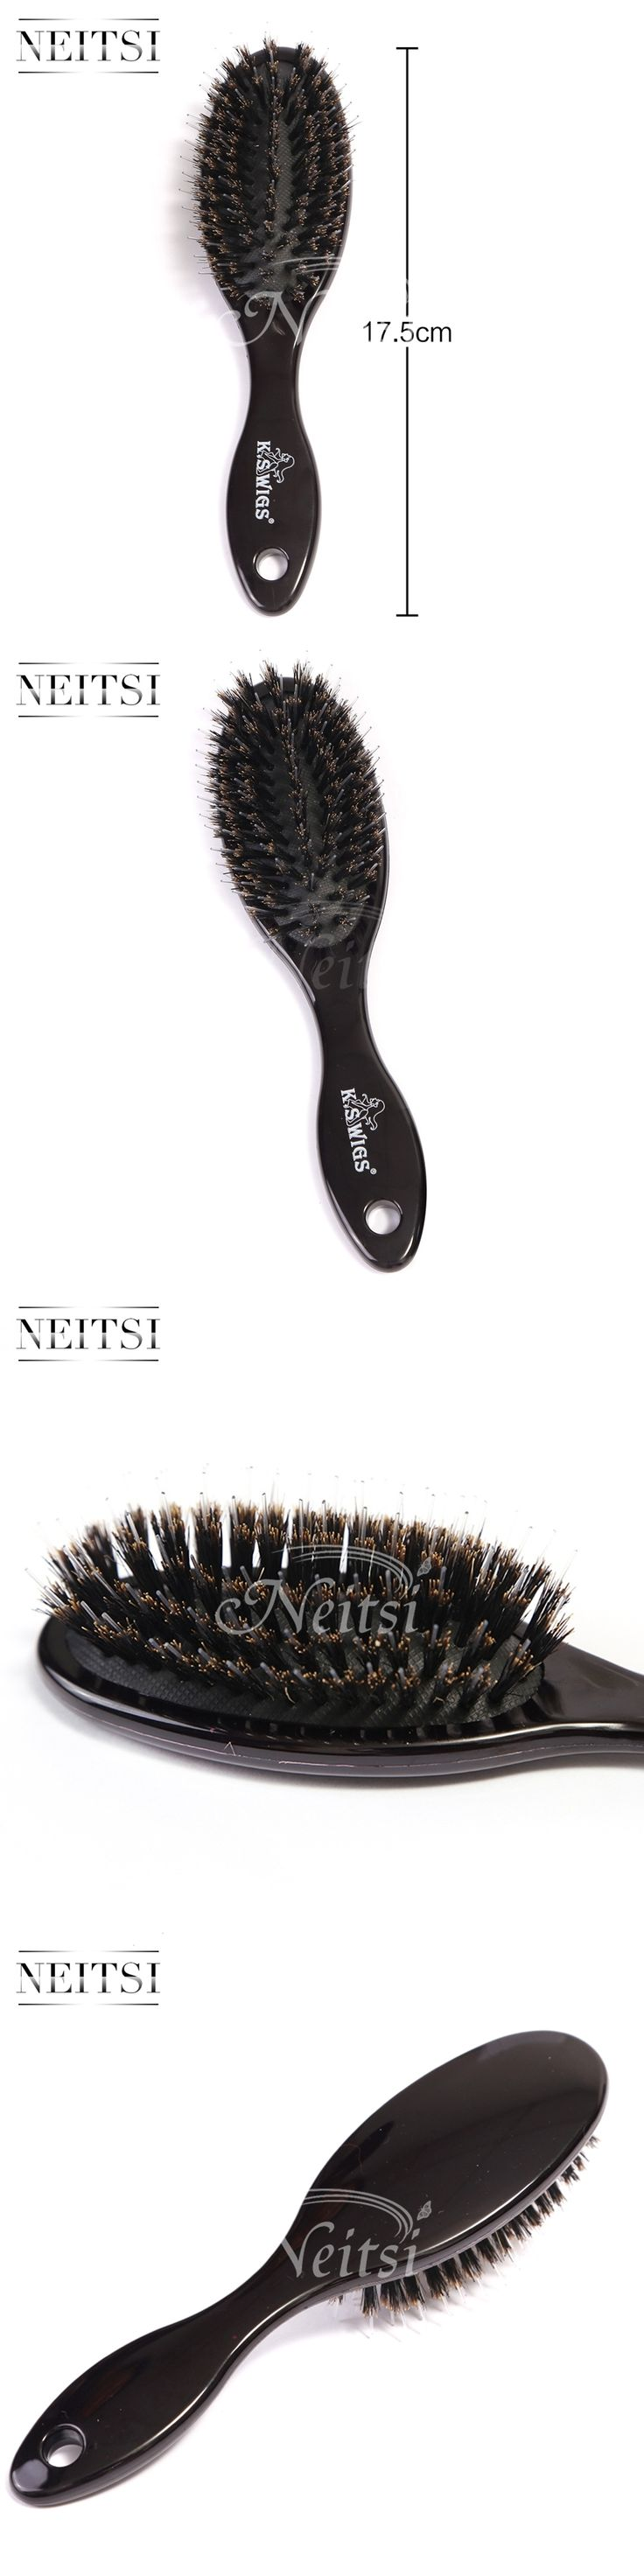 Neitsi Professional Boar Bristle Hair Brush Bamboo Brush Hair comb for Human Hair Extensions 1PCS/PACK